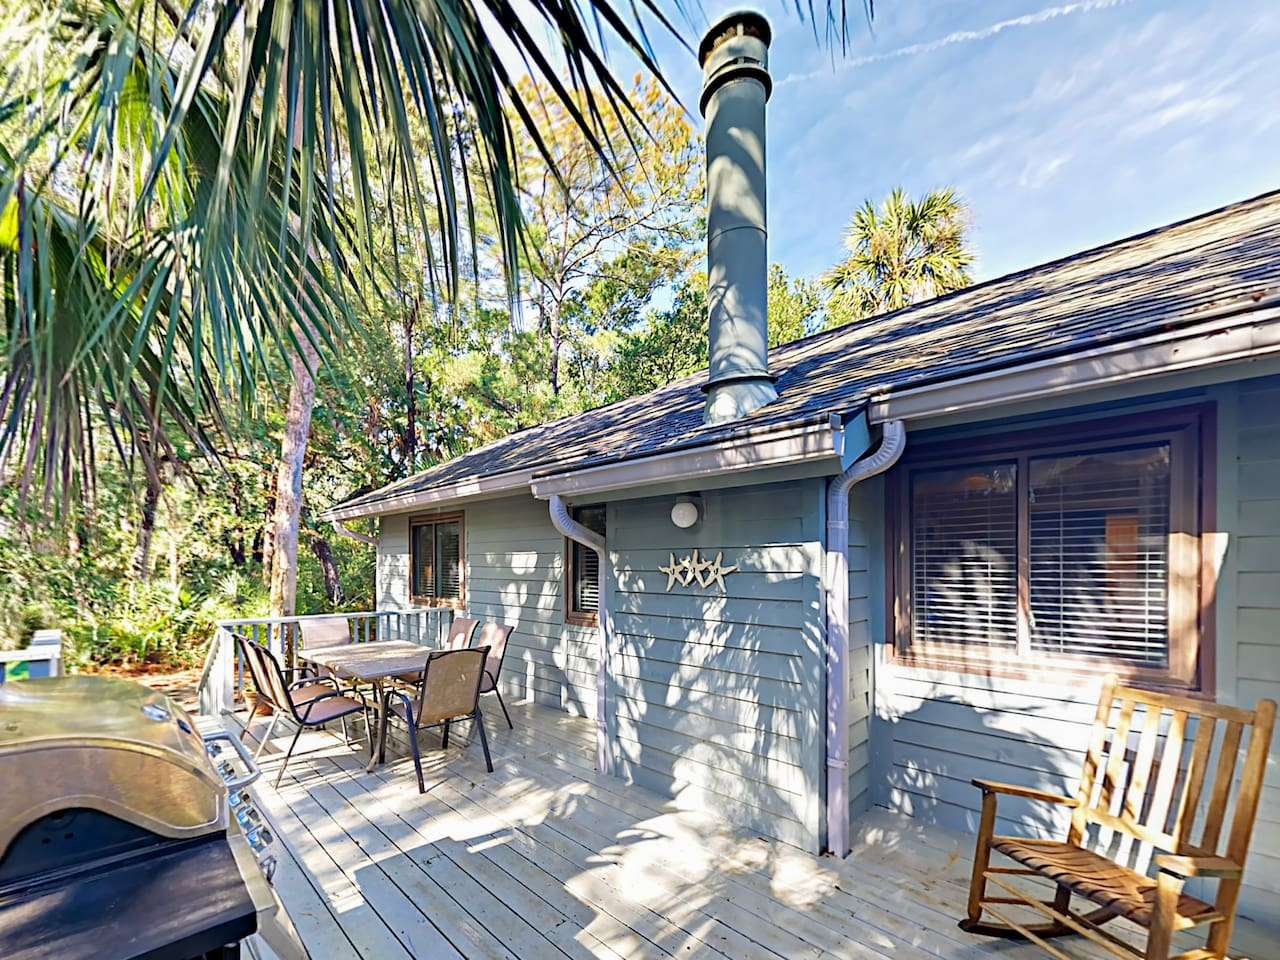 A private deck features a gas grill, and an outdoor dining table that seats 6.